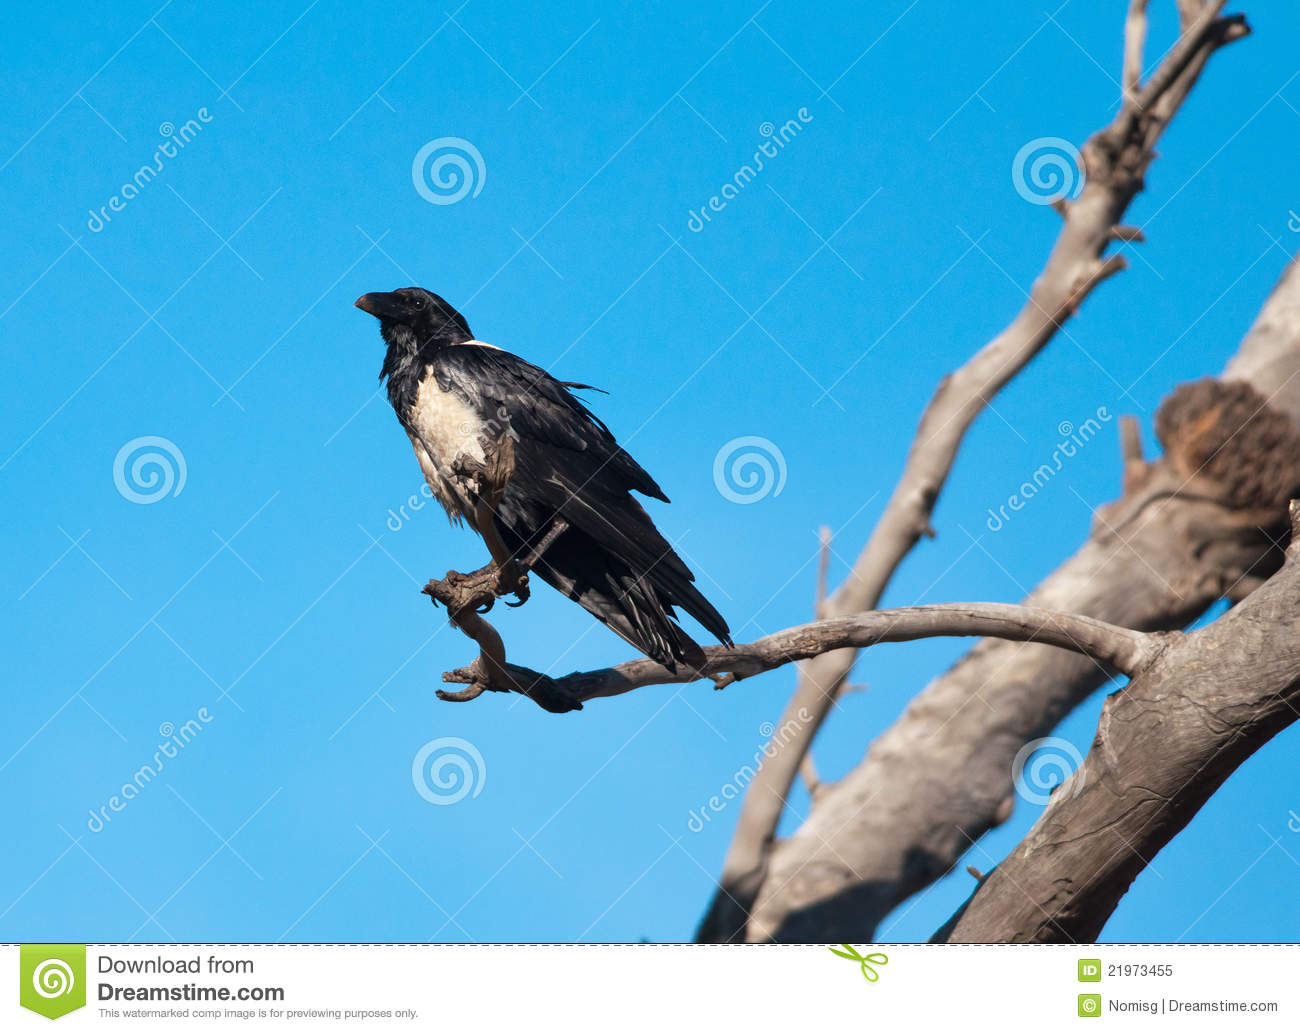 Pied Crow clipart #11, Download drawings